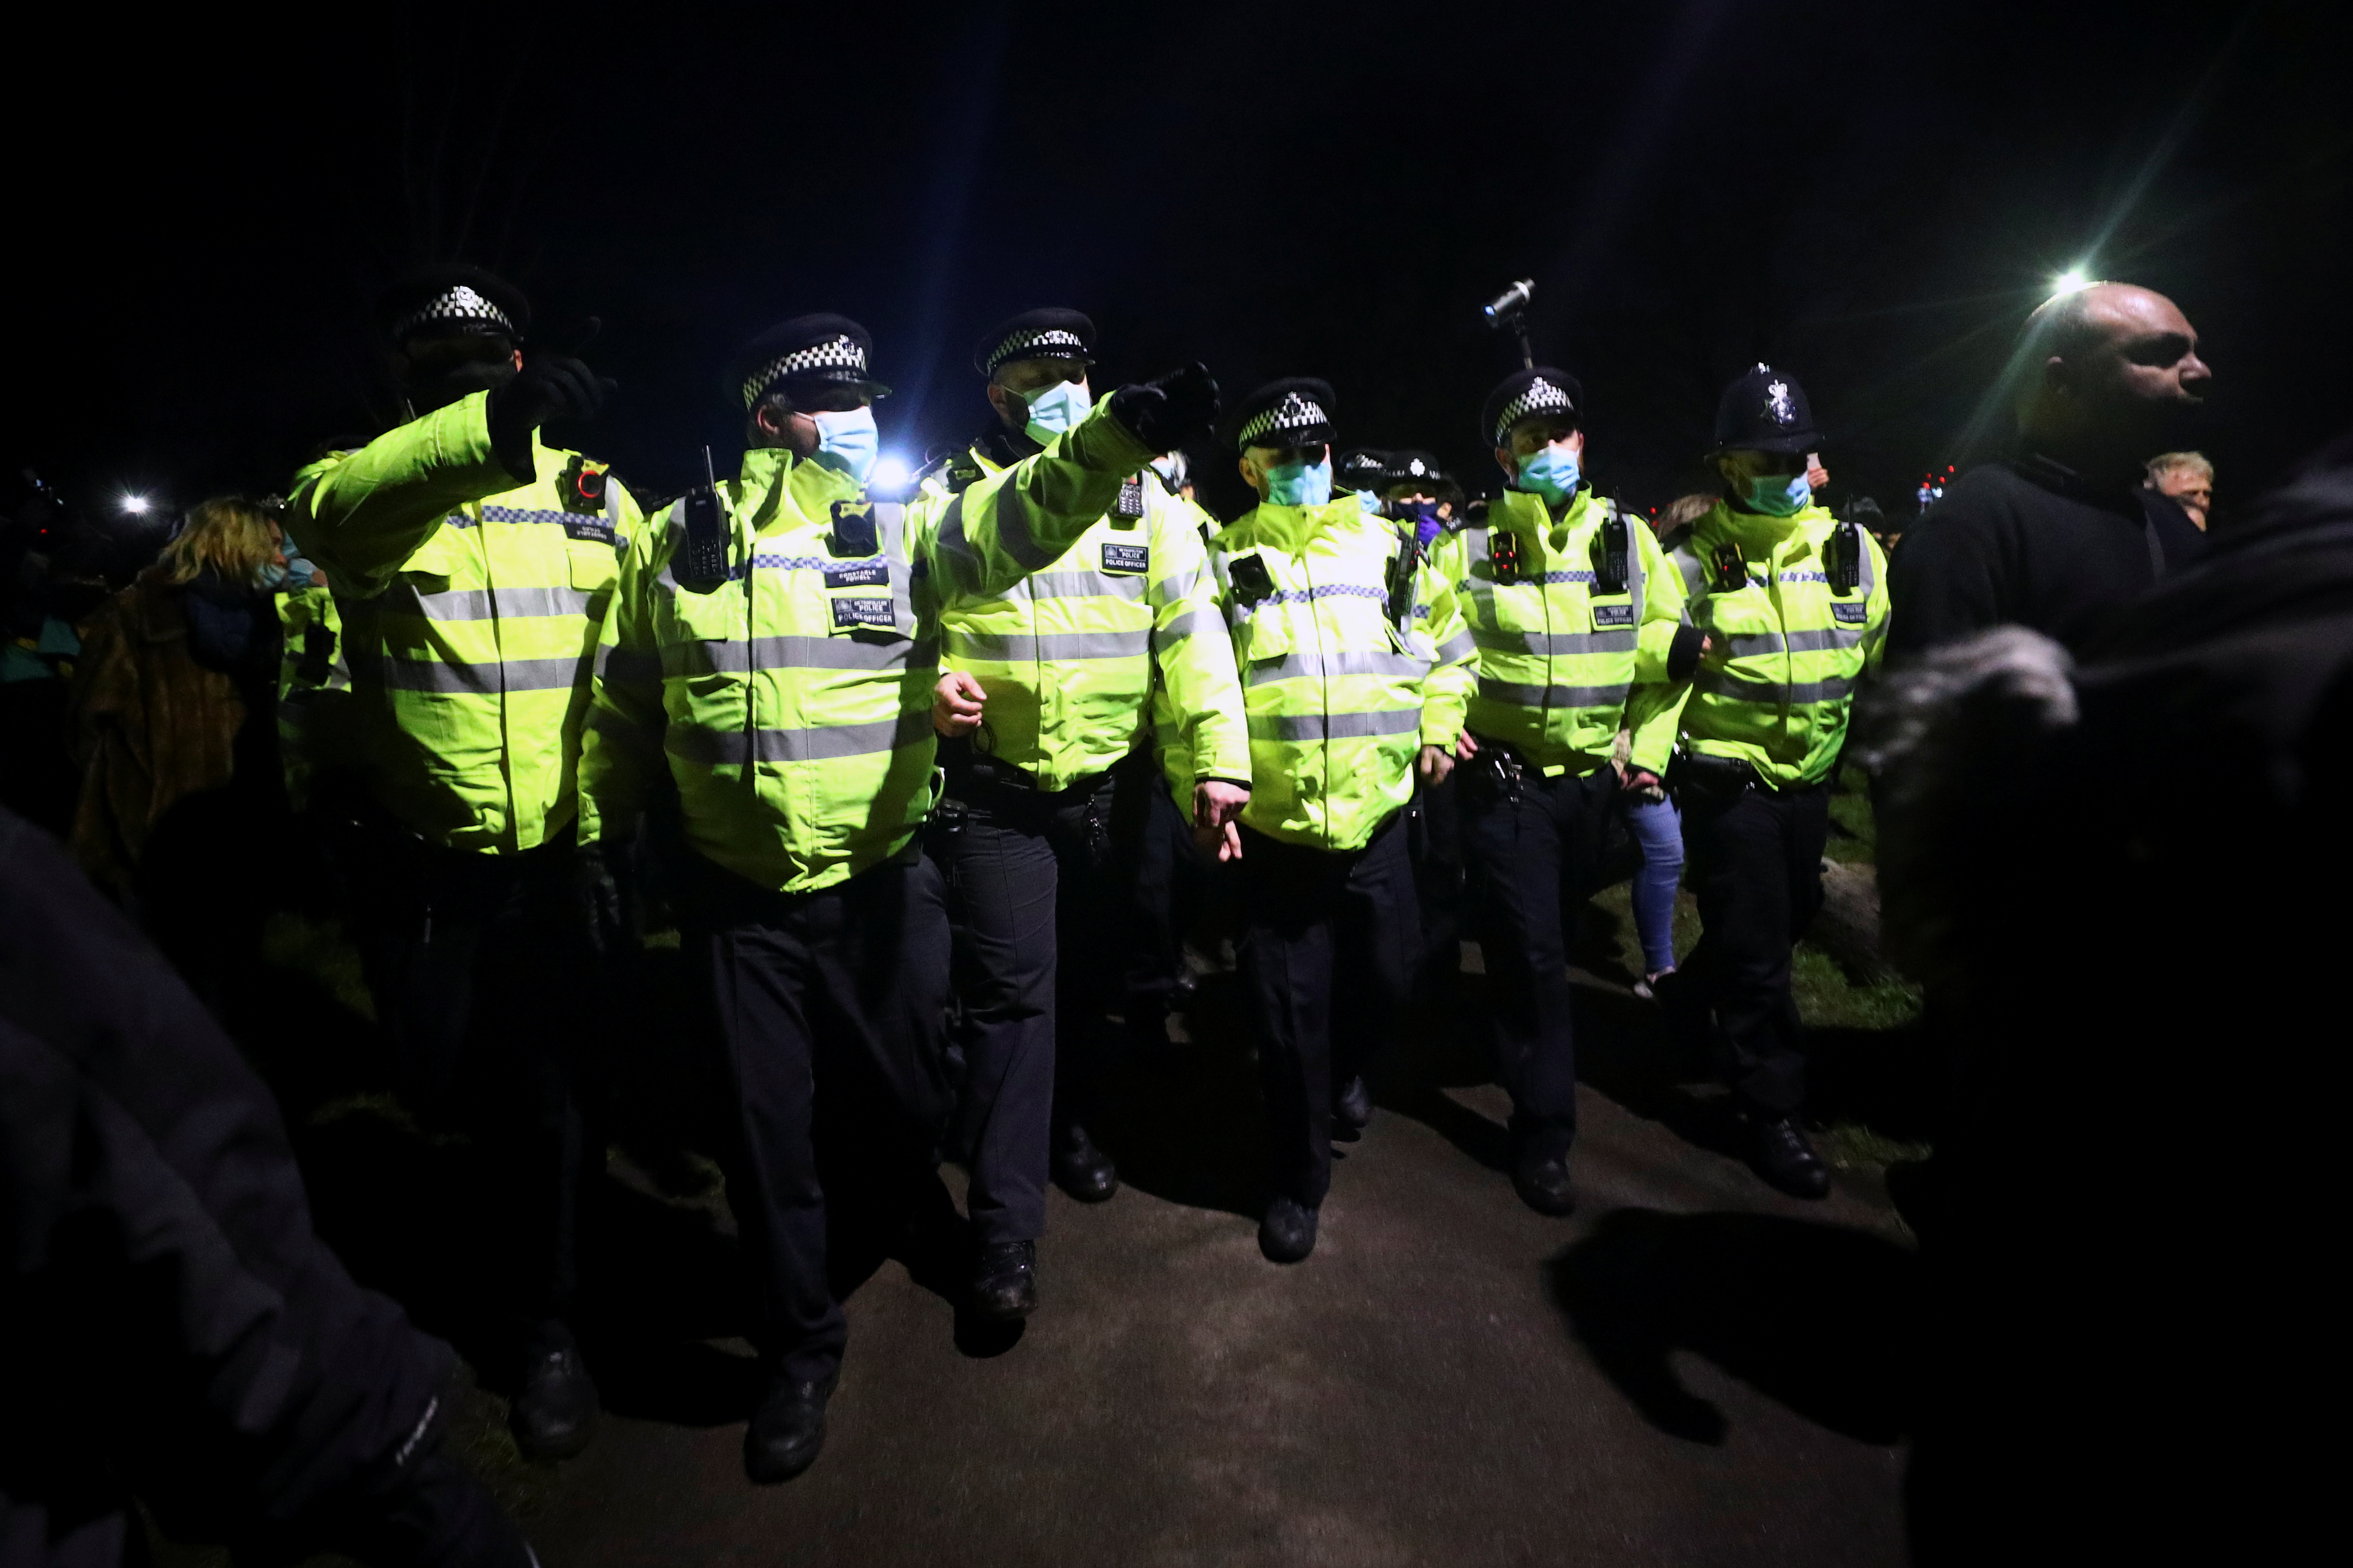 Police members gesture as people gather at a memorial site in Clapham Common Bandstand, following the kidnap and murder of Sarah Everard, in London, Britain March 13, 2021. REUTERS/Hannah McKay